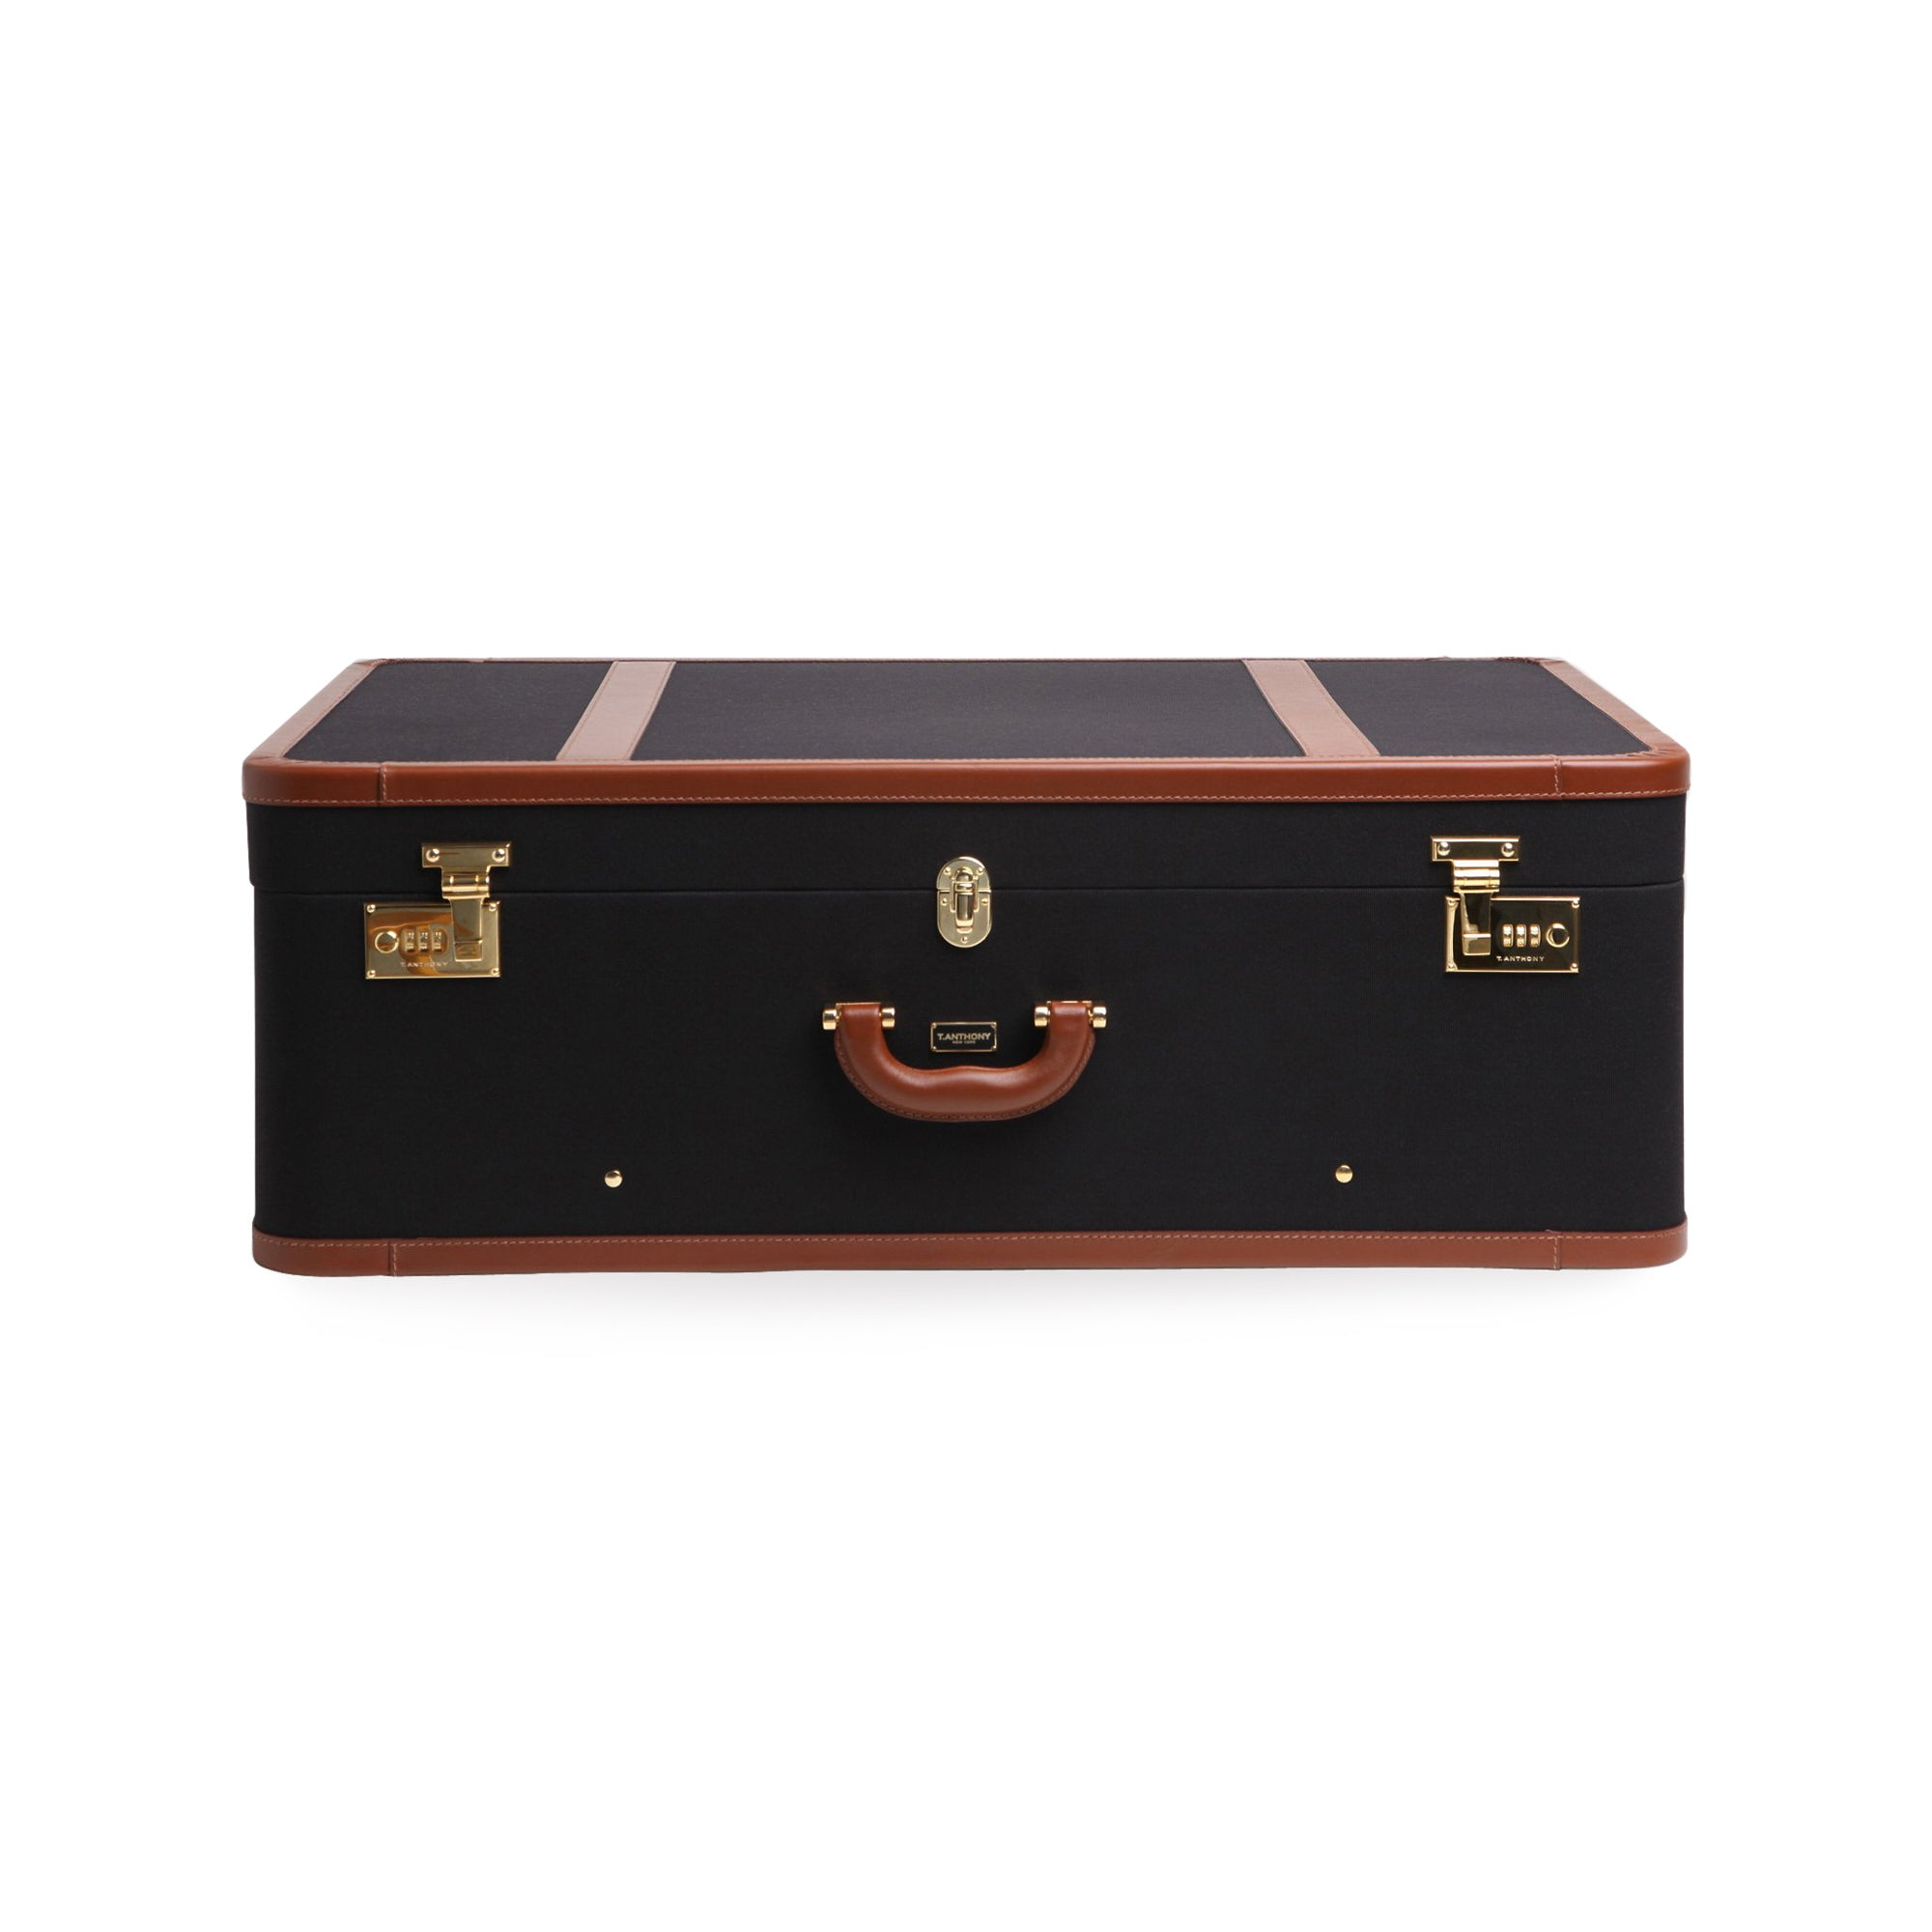 "29"" HARDSIDED PACKING CASE"